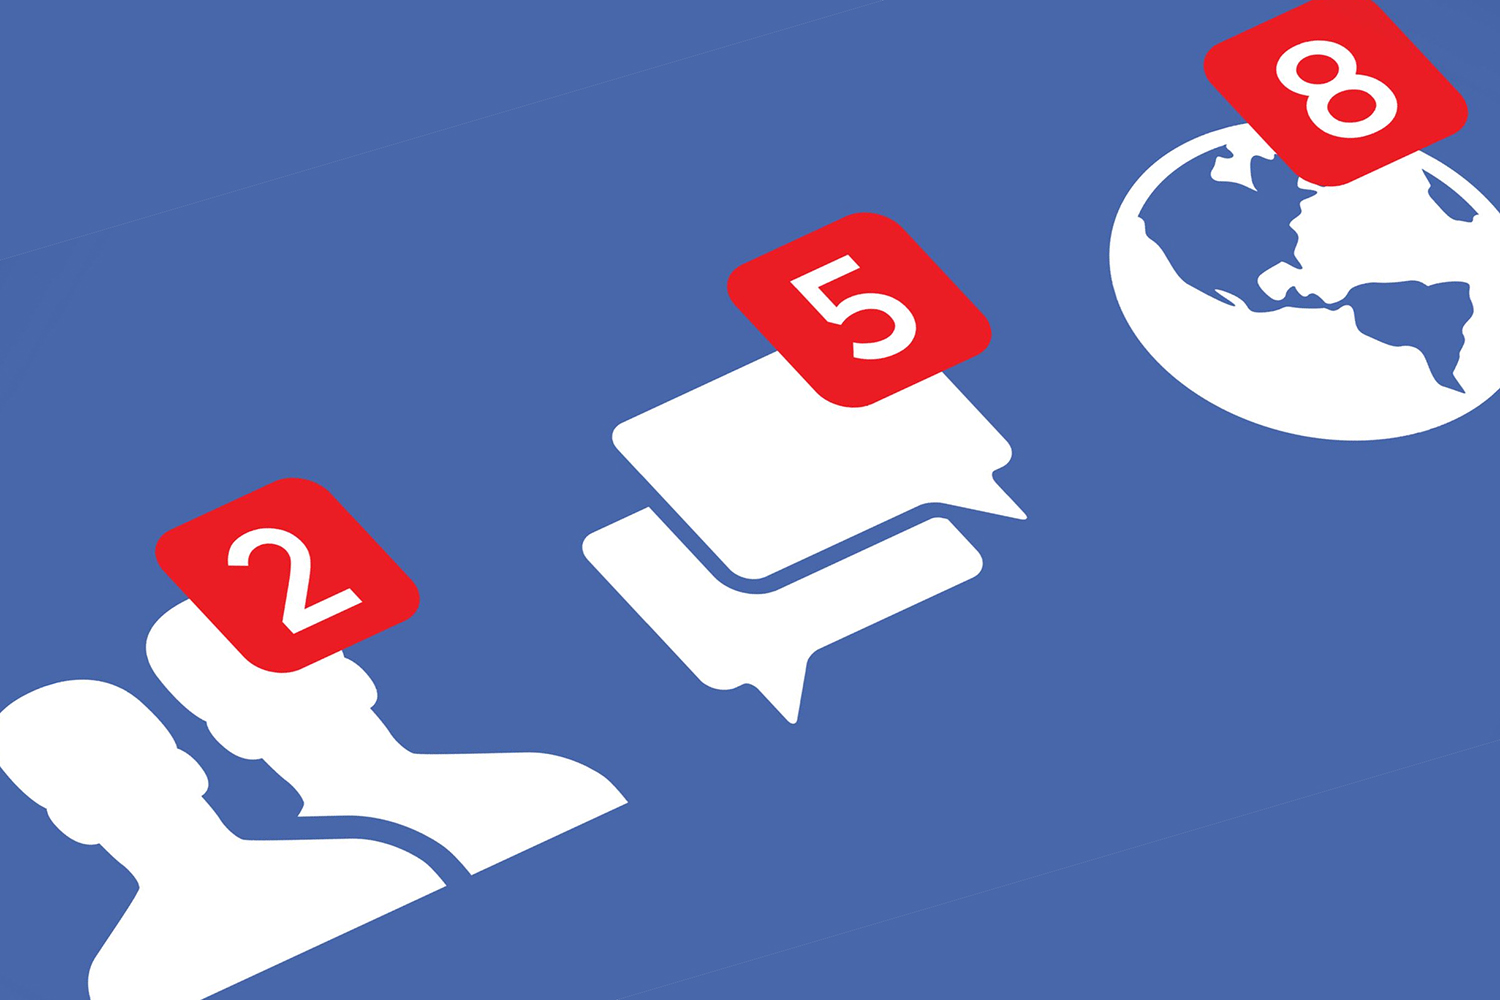 Blocking someone on Facebook will prvent that person from messaging you, tagging you in posts, or adding you as a friend